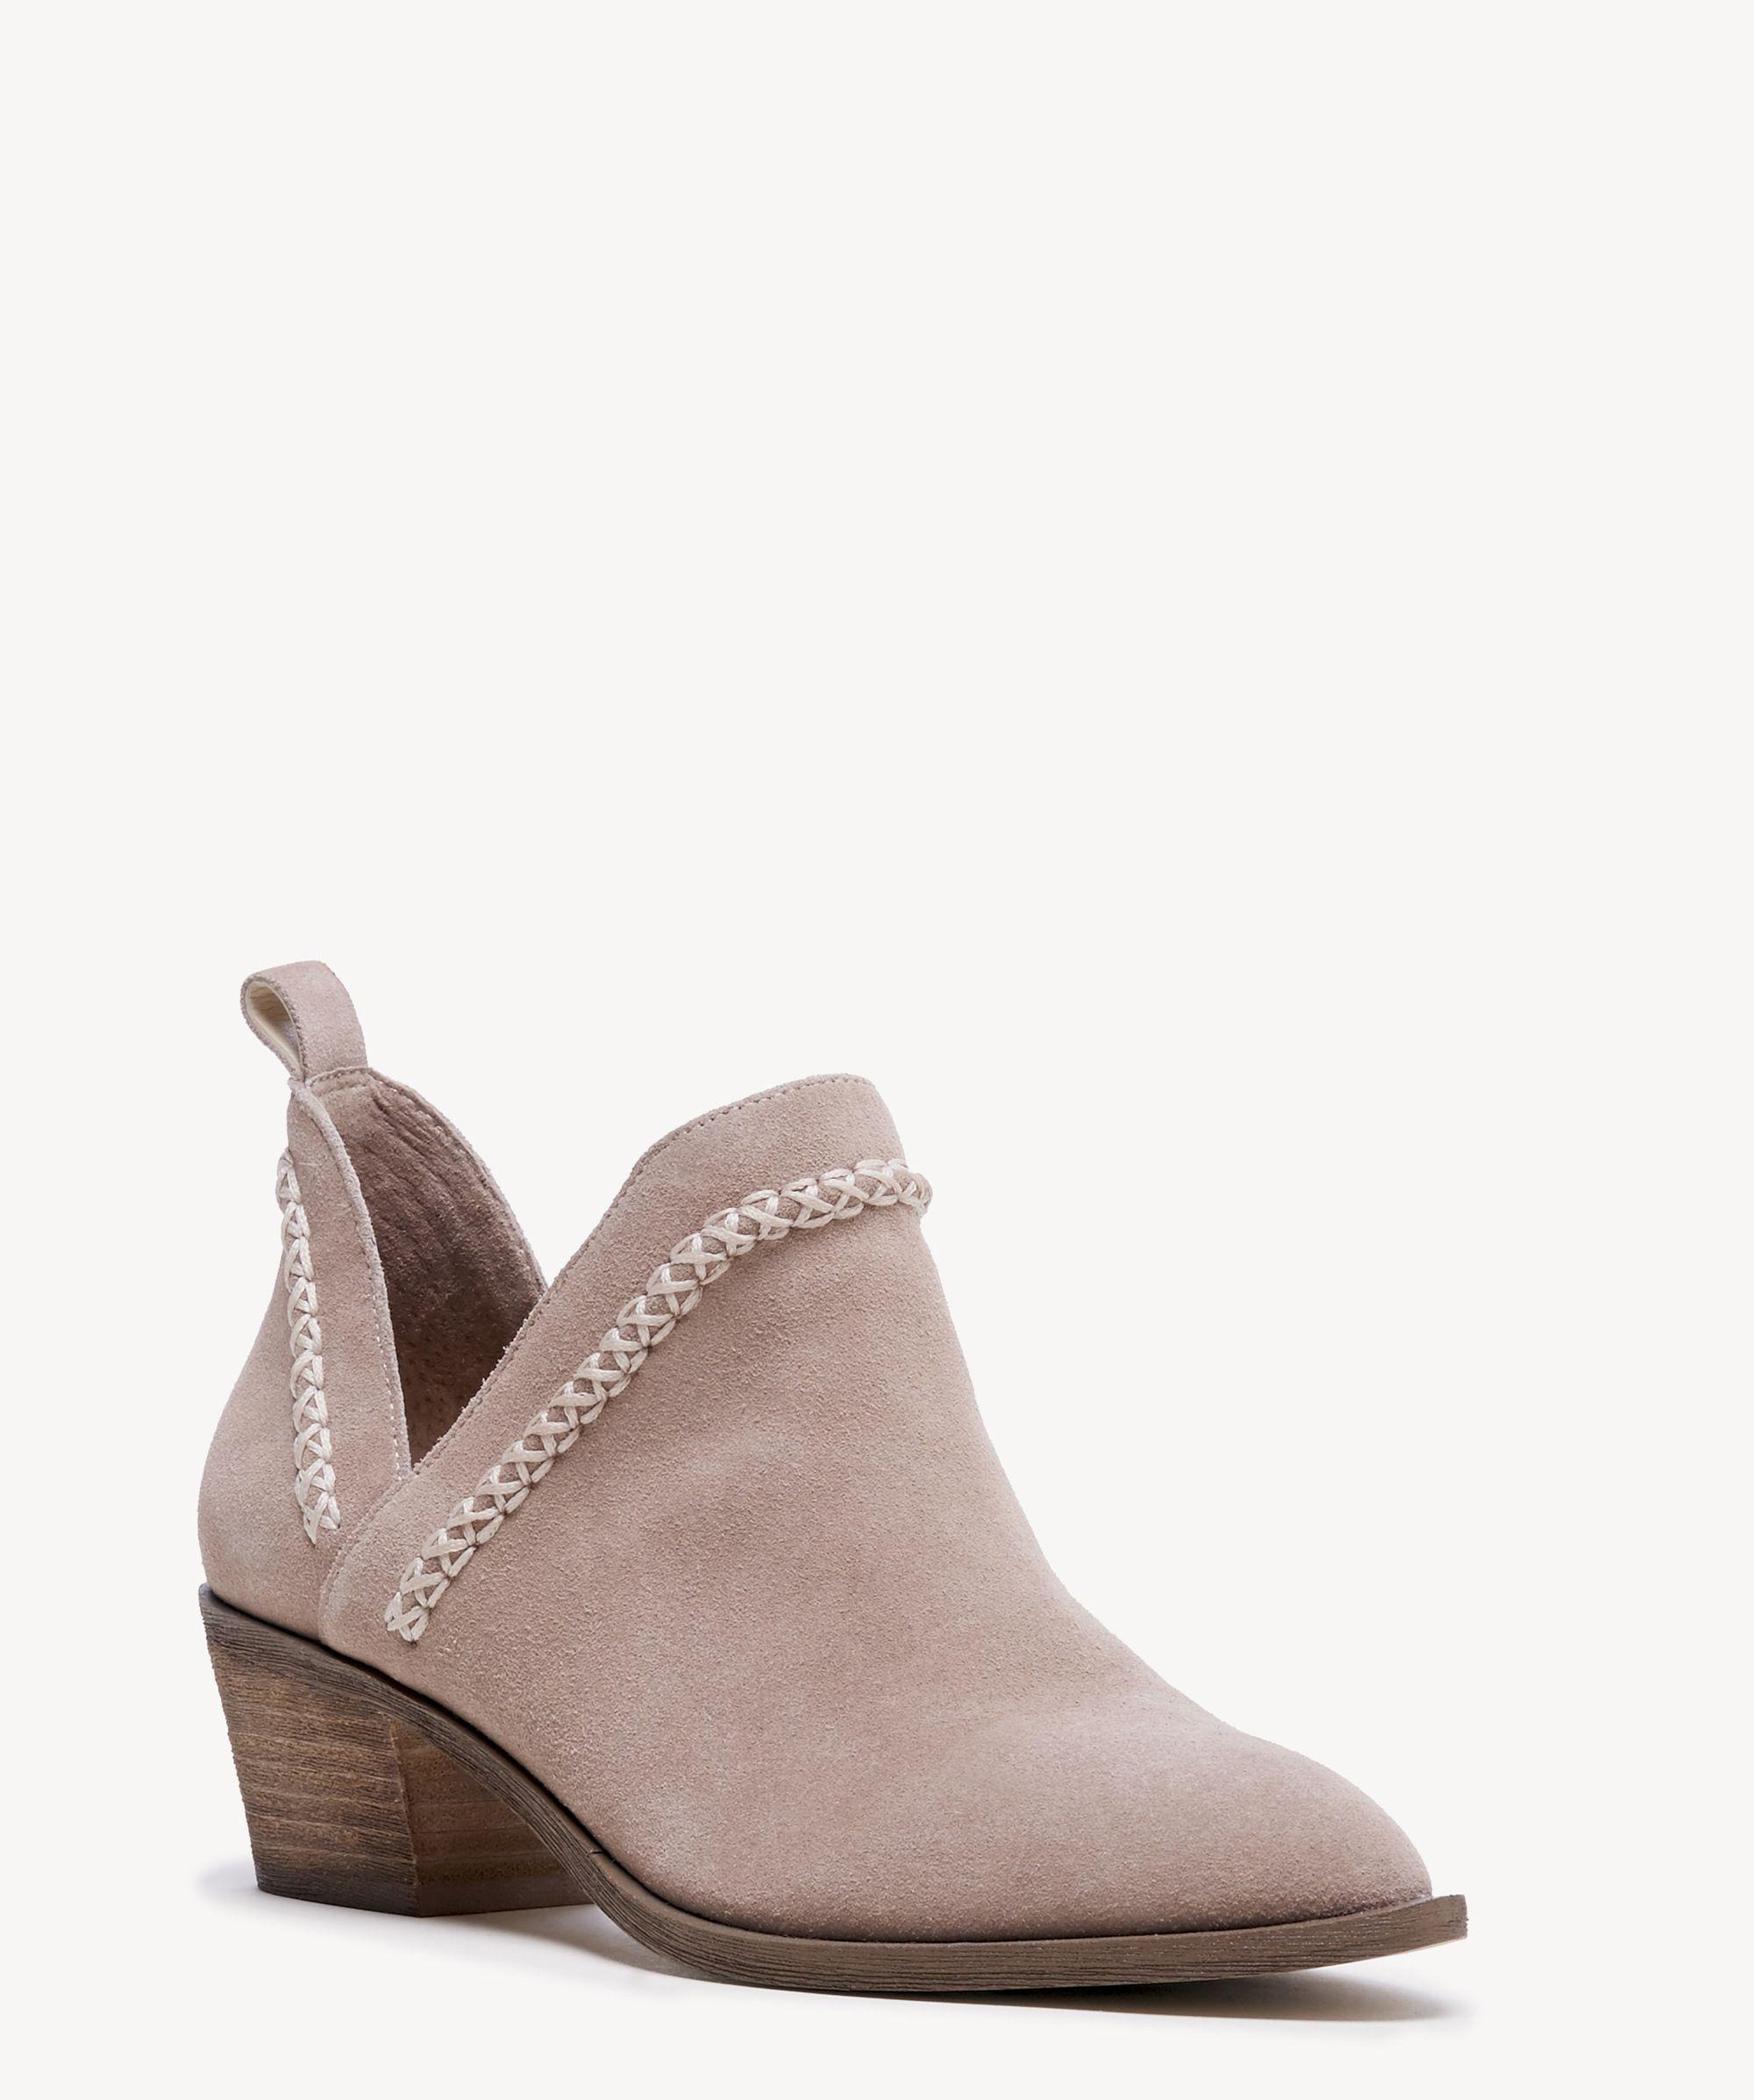 029703608ff Sole Society. Women s Nikkie Braided Bootie